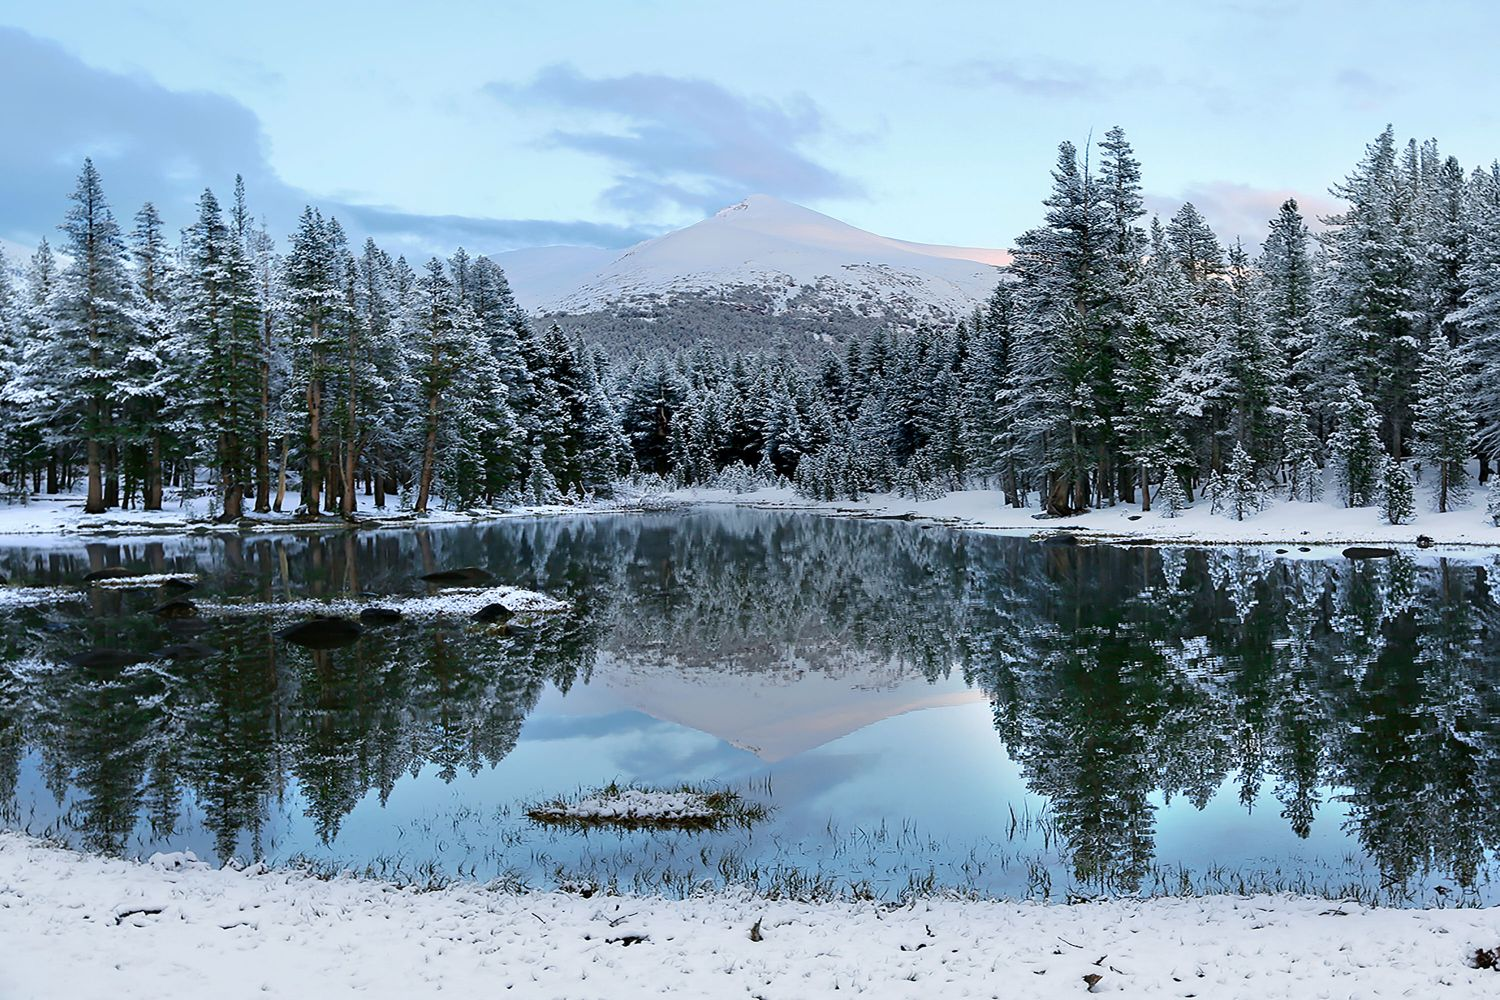 Reflections at Dana Meadows, Yosemite with several inches of autumn snow